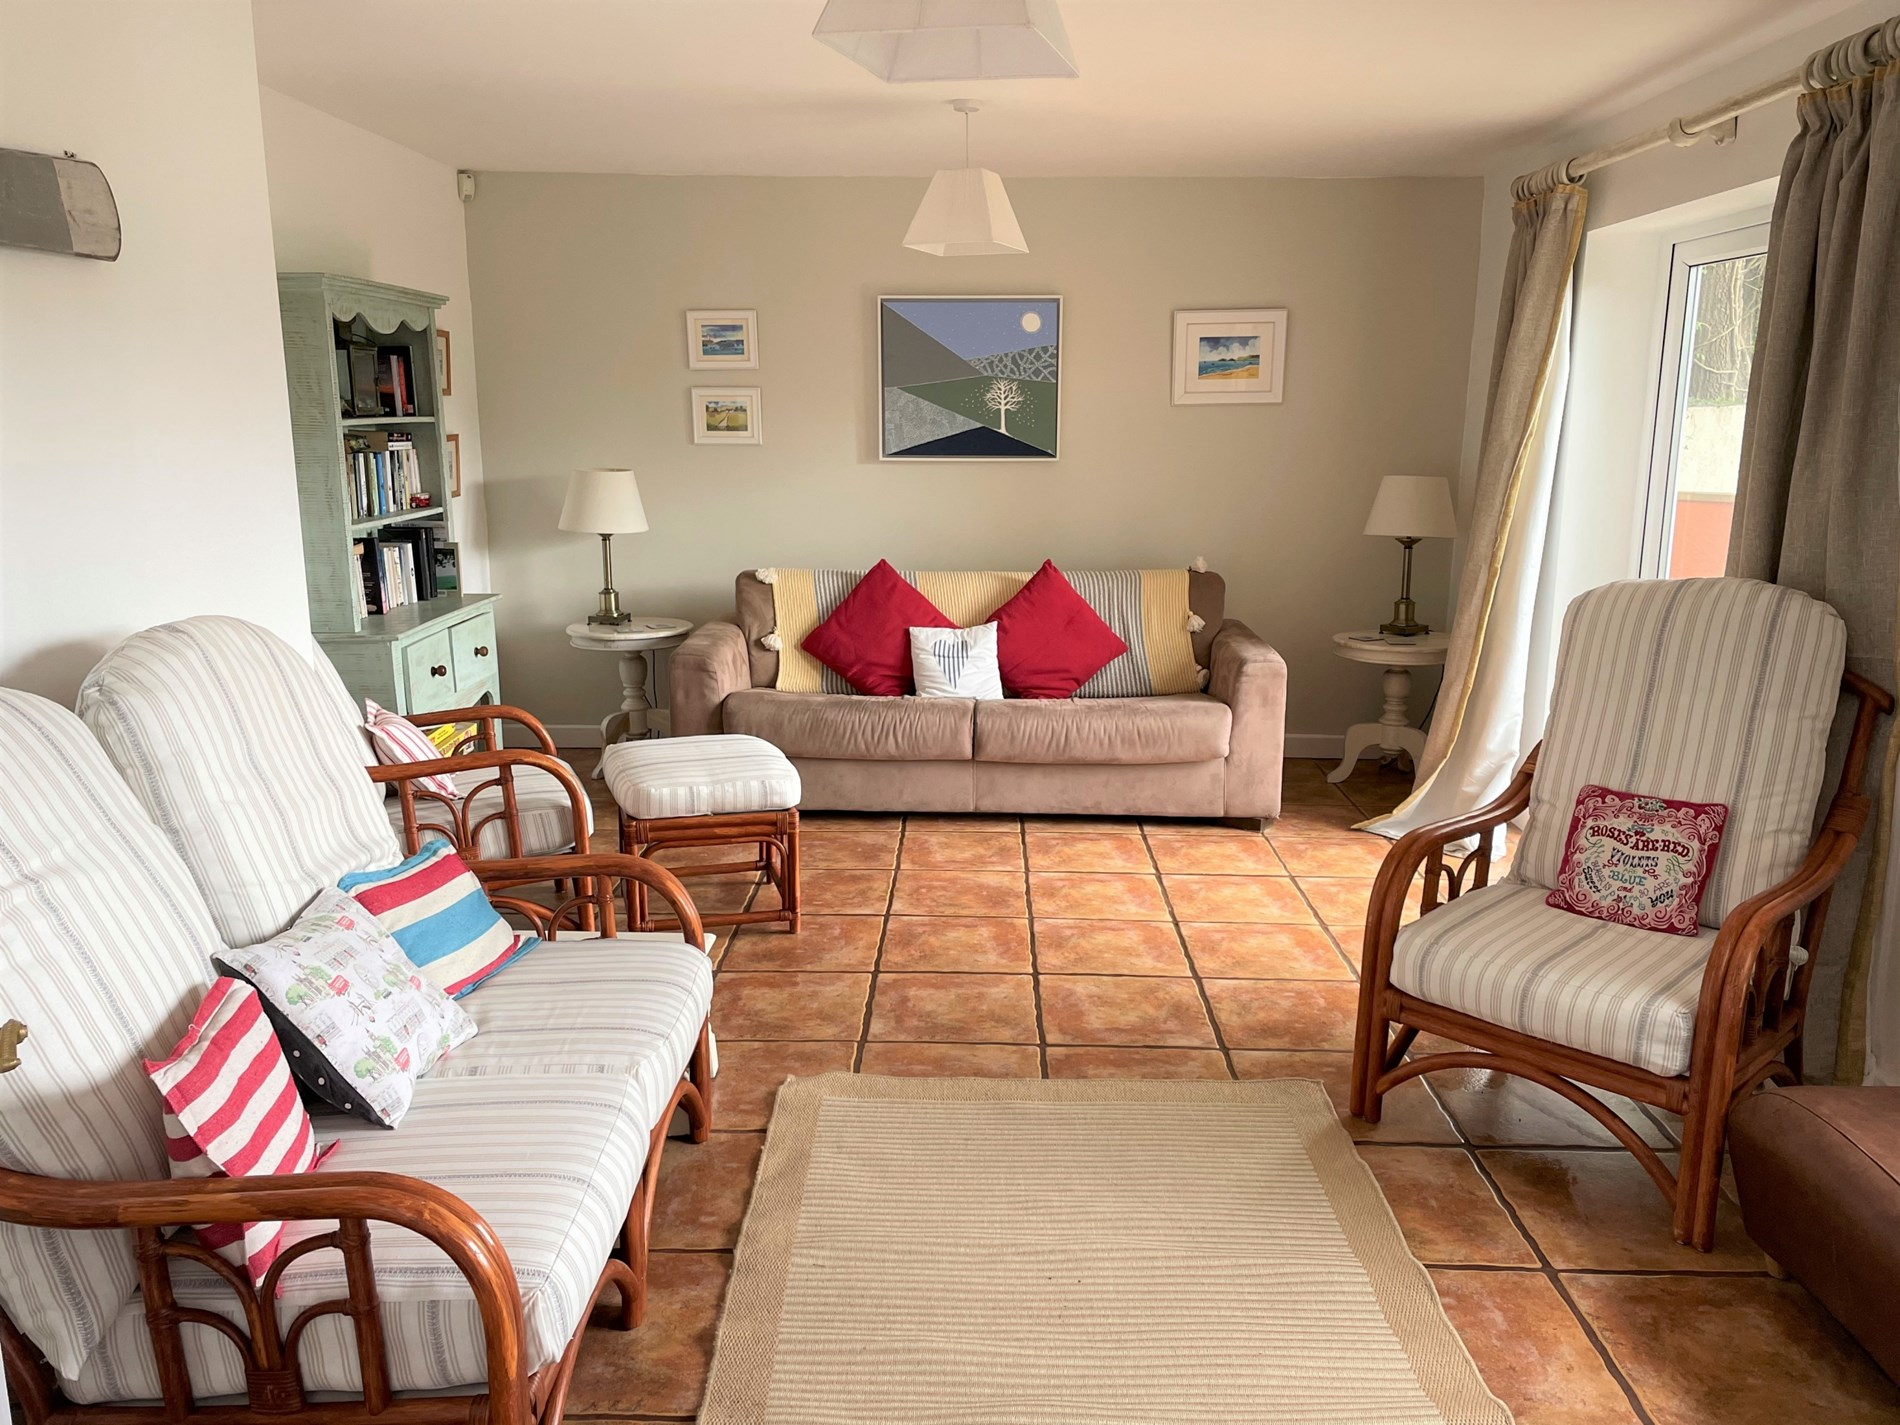 4 Bedroom Bungalow in North Wales, Snowdonia and North Wales